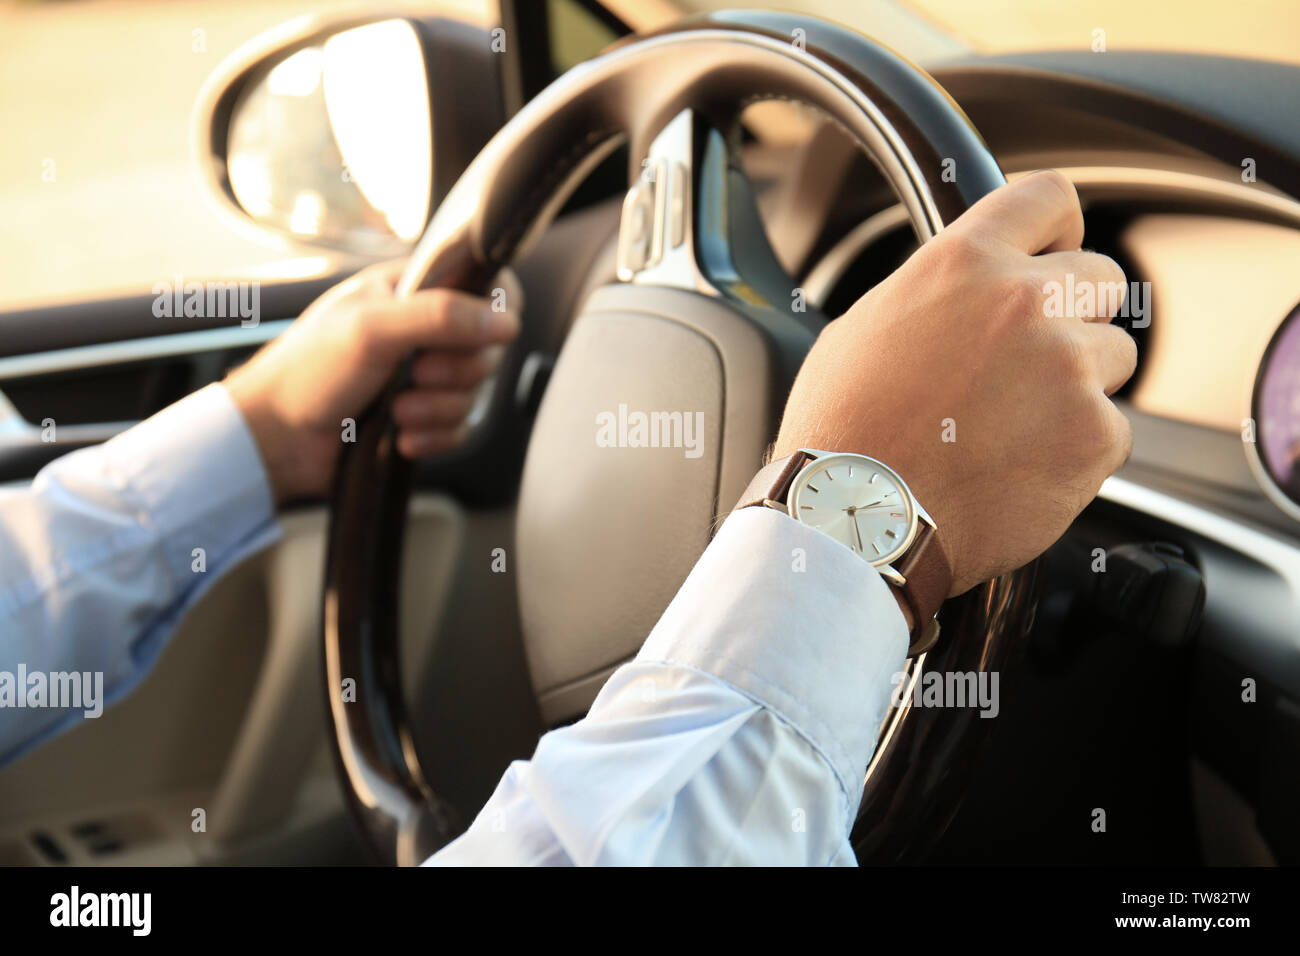 Man in formal wear driving car - Stock Image